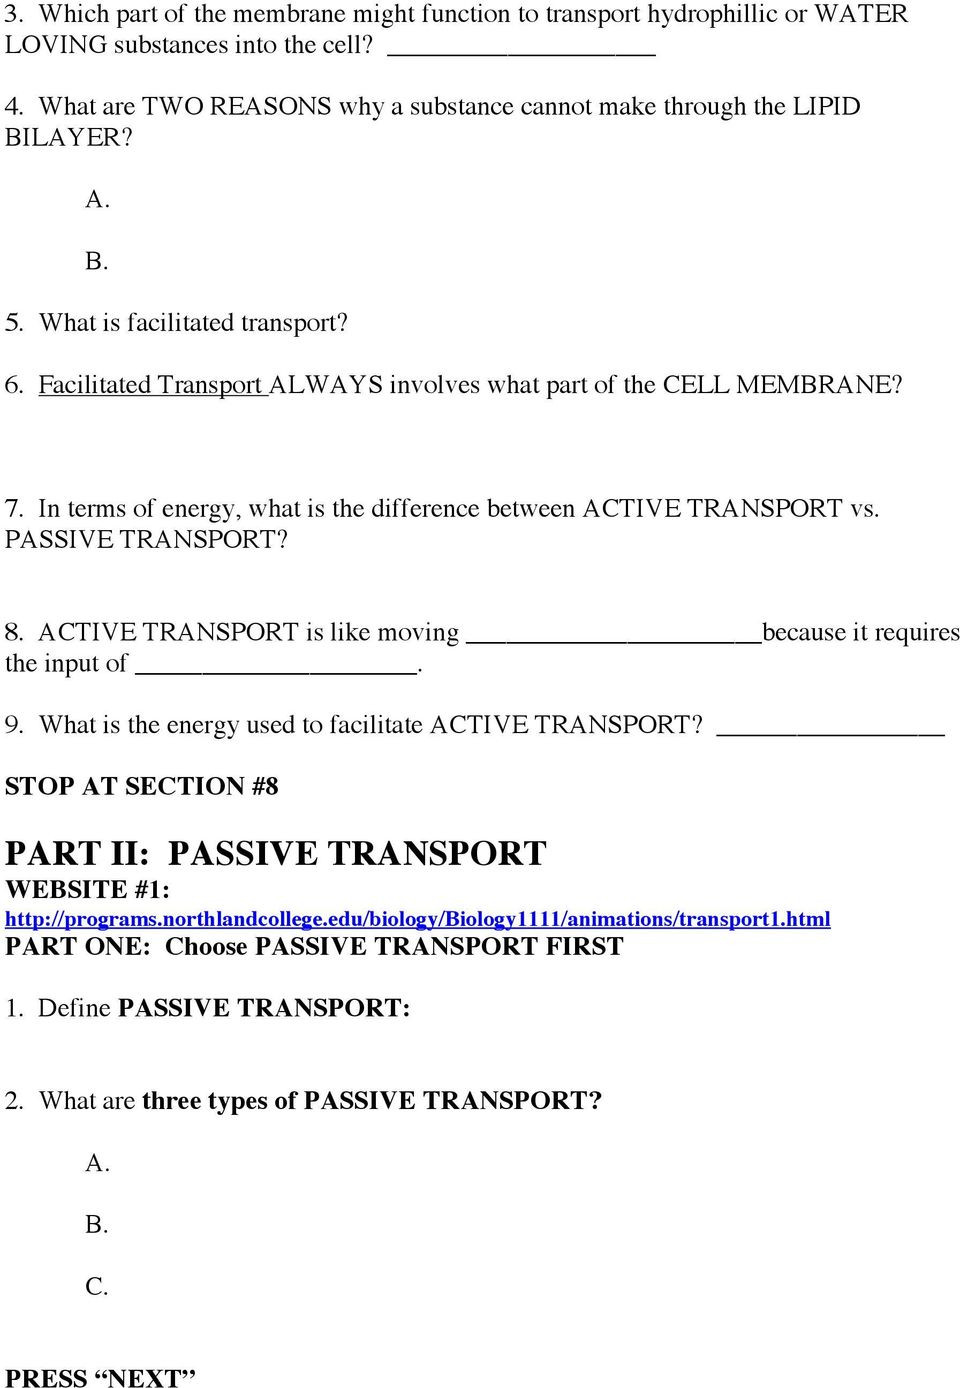 Cellular Transport Worksheet Answer Key Cell Membrane & Cell Transport Passive and Active Webquest